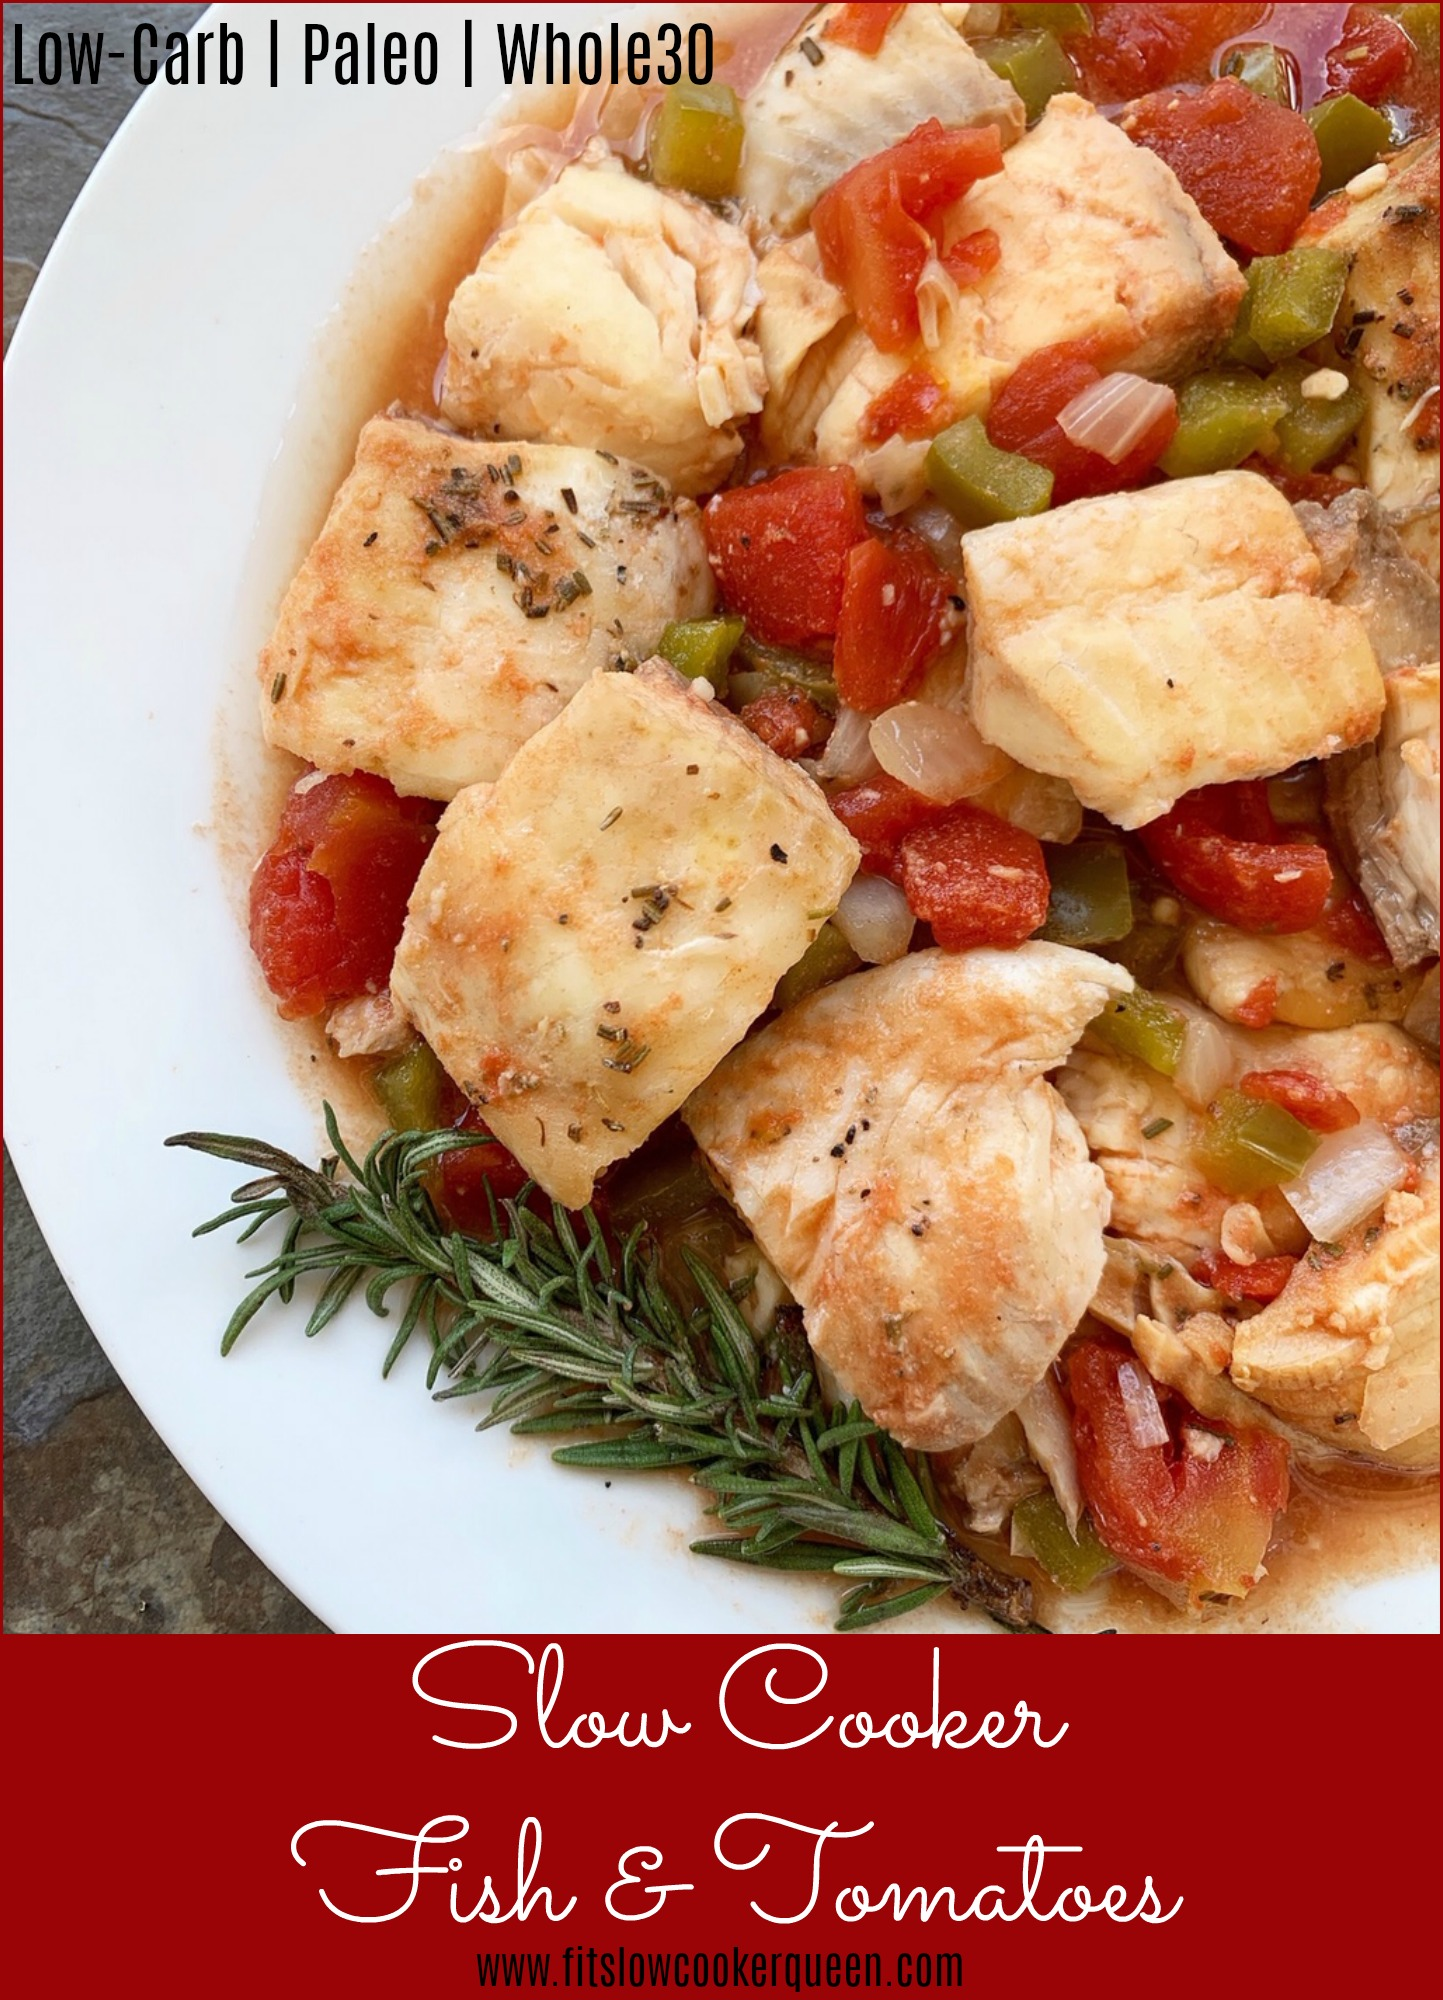 Fish in the slow cooker? Of course. Your favorite fish slow cooks with tomatoes and vegetables in this an easy low-carb, paleo, and whole30 recipe.